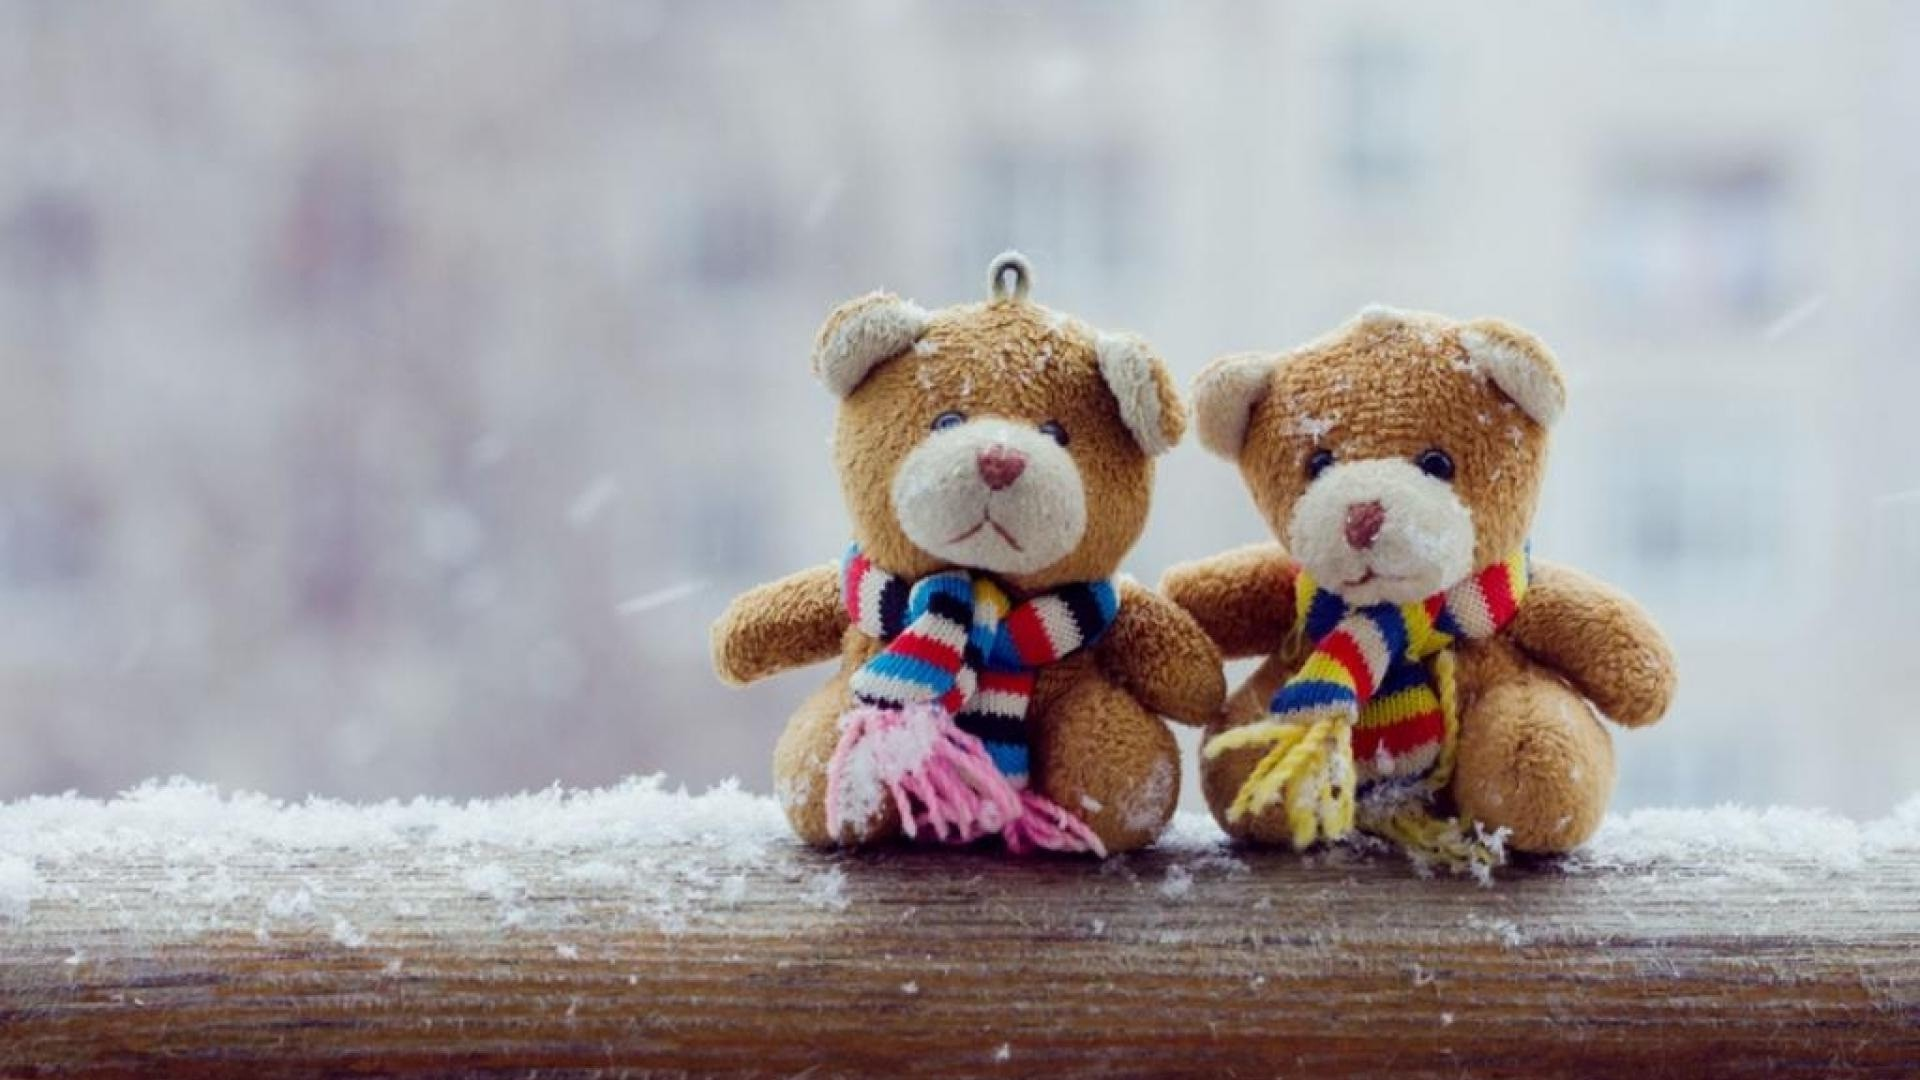 New Year 2017 Teddy Bear Wallpapers Quotes and Images – Happy New Year 2017  Quotes Wishes Sayings Images